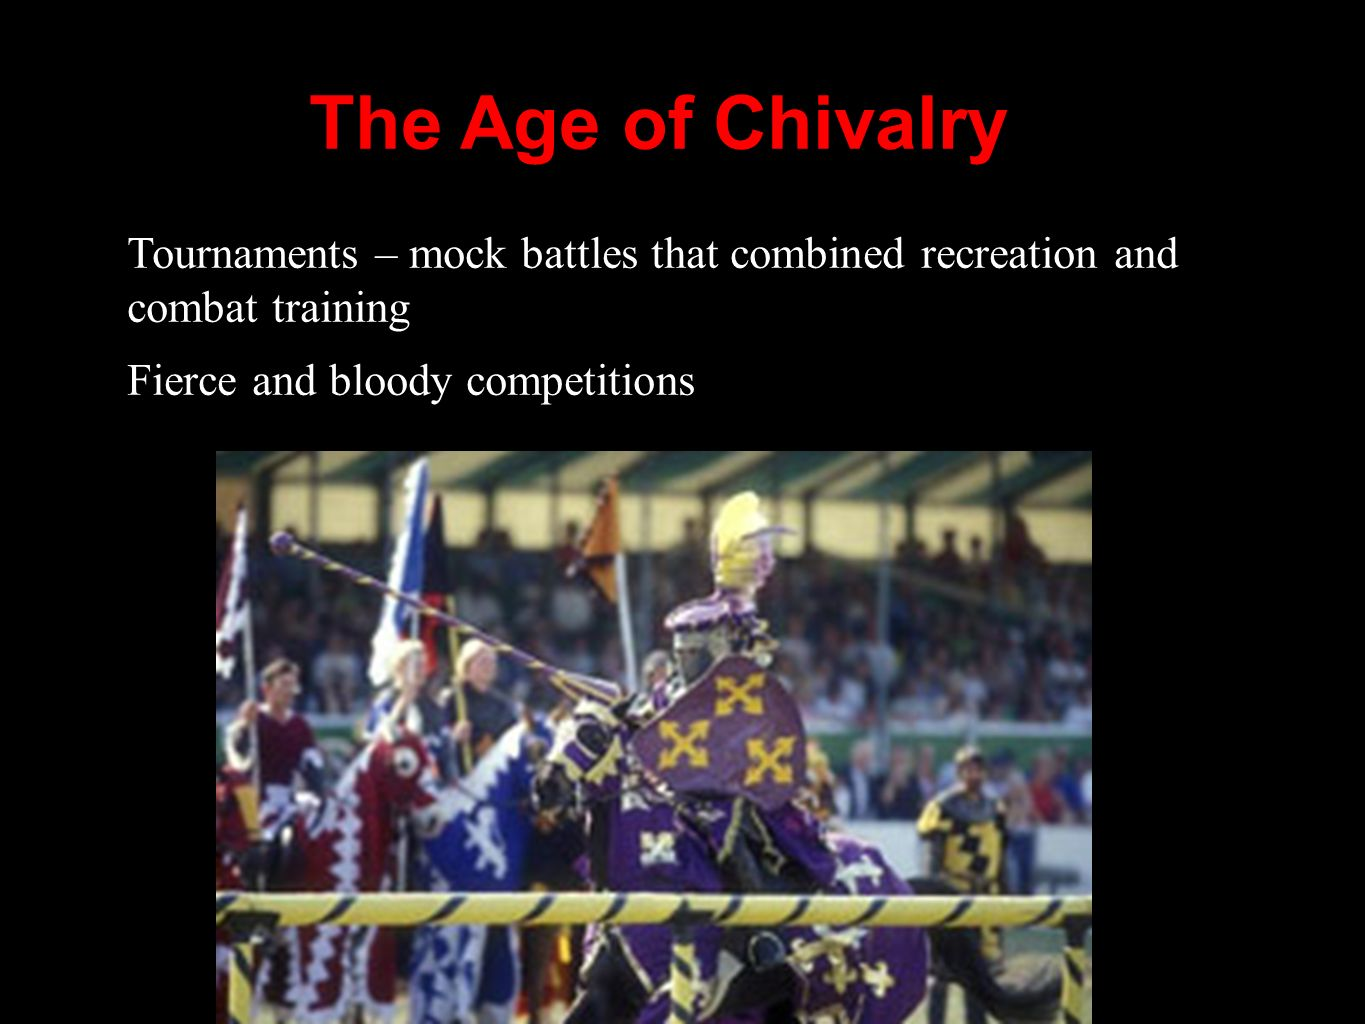 The Age of Chivalry Tournaments – mock battles that combined recreation and combat training.